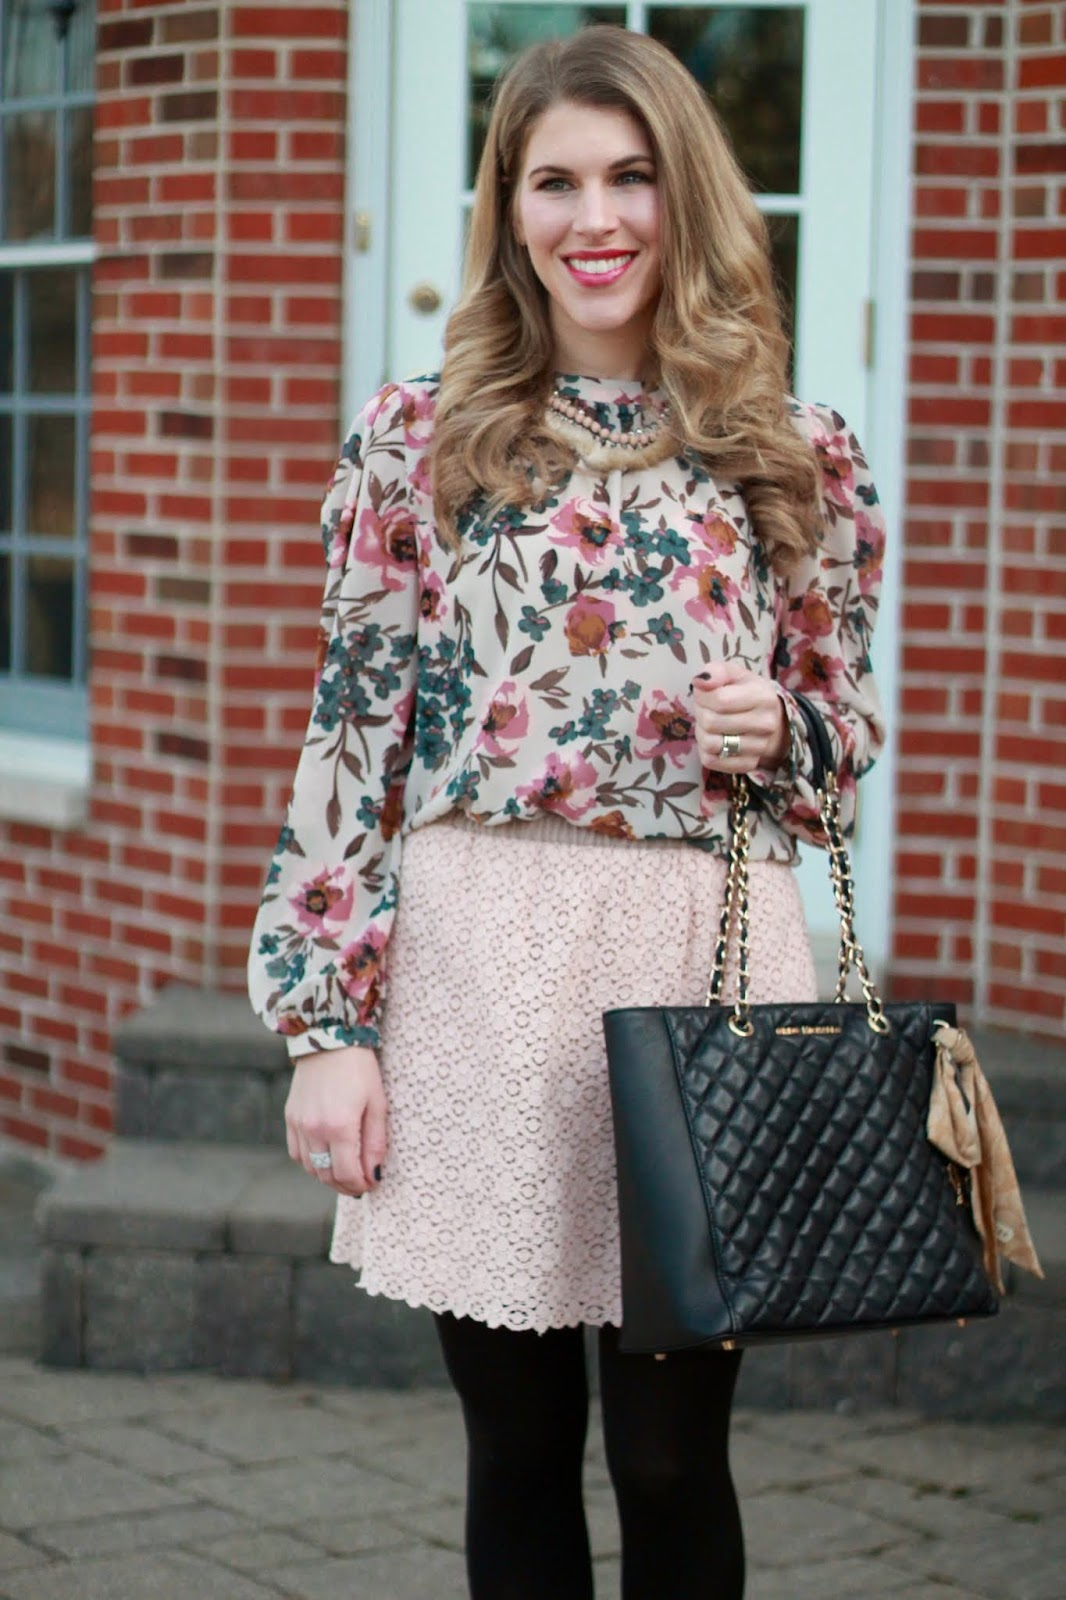 447f3b291b Blouse-c/o SheIn | Skirt (similar, similar) | Necklace (similar, similar) |  Bag (save, splurge) | Pumps (save, splurge) I shared this look on instagram  last ...